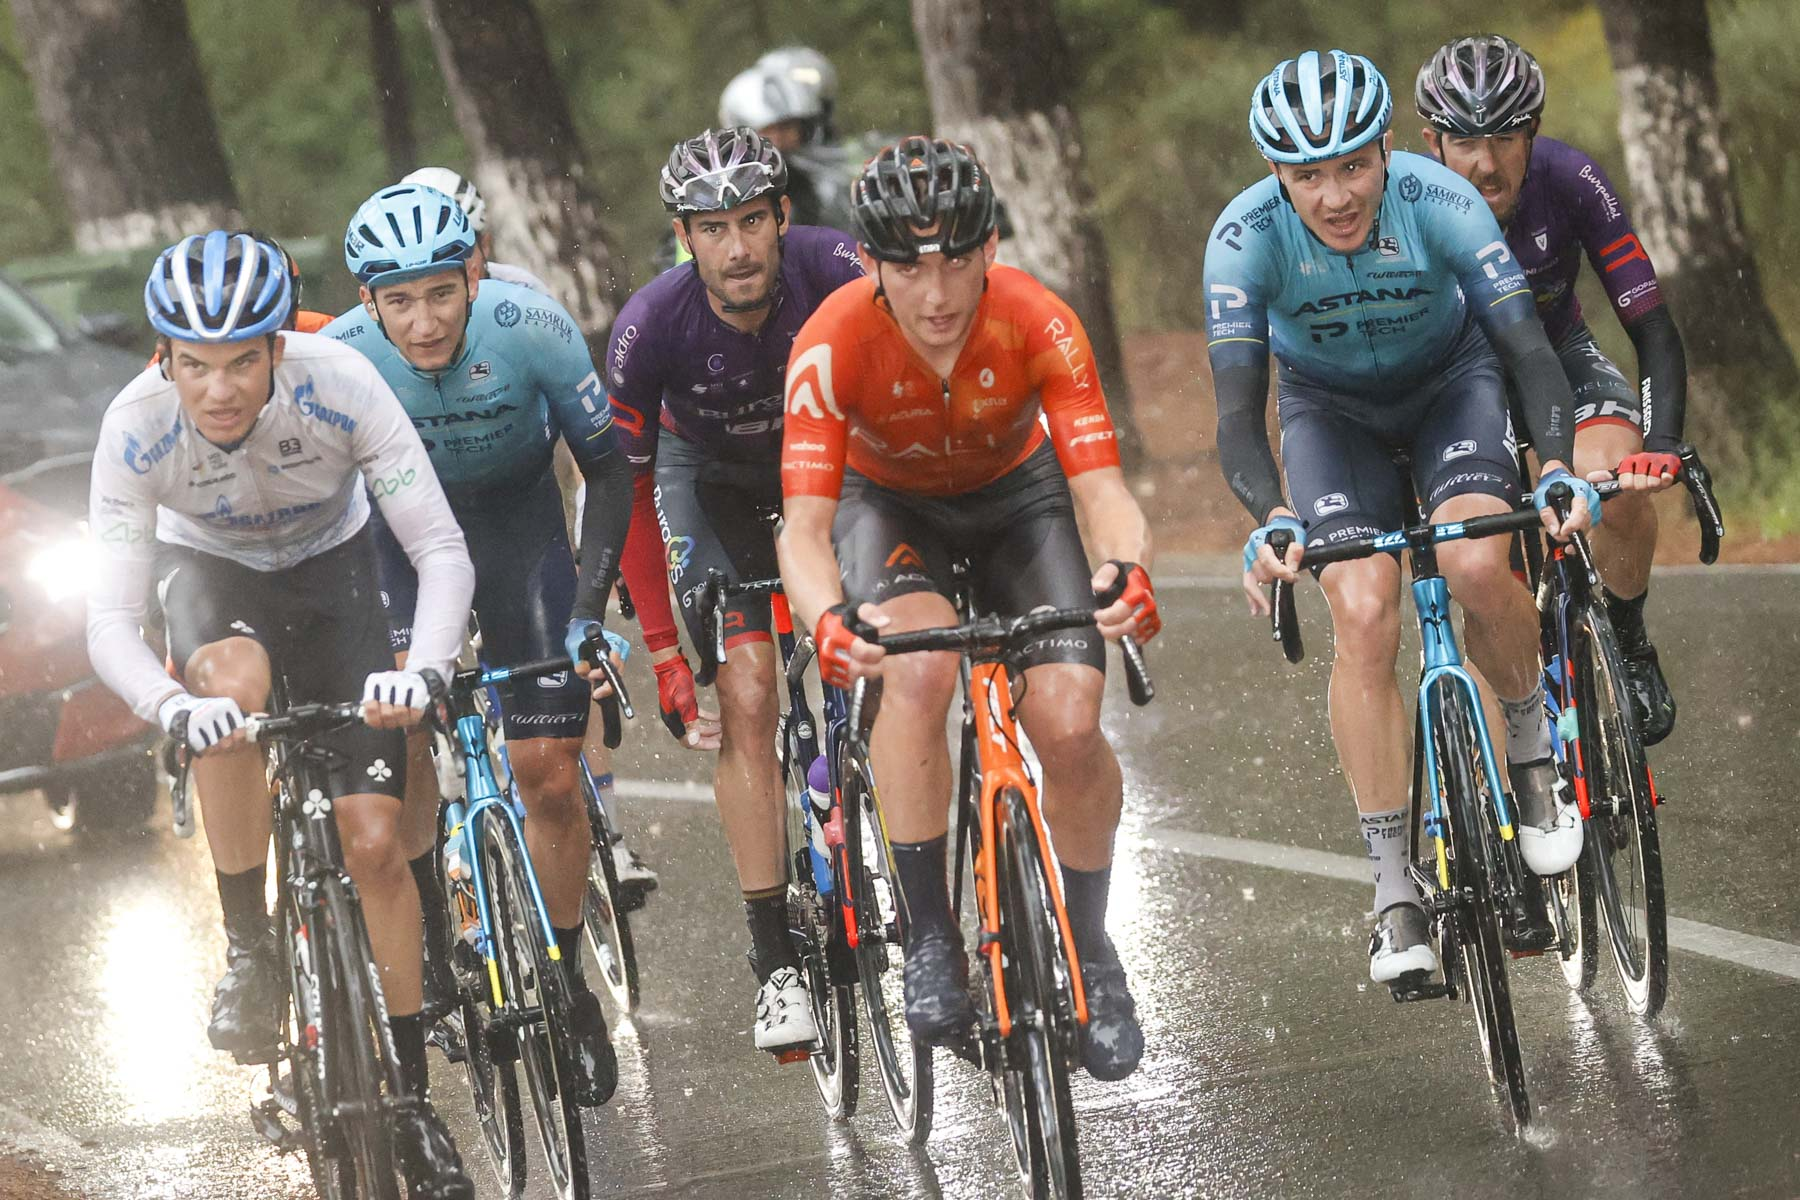 SHEFFIELD EYES KOM BEFORE DISTANCING HIS RIVALS